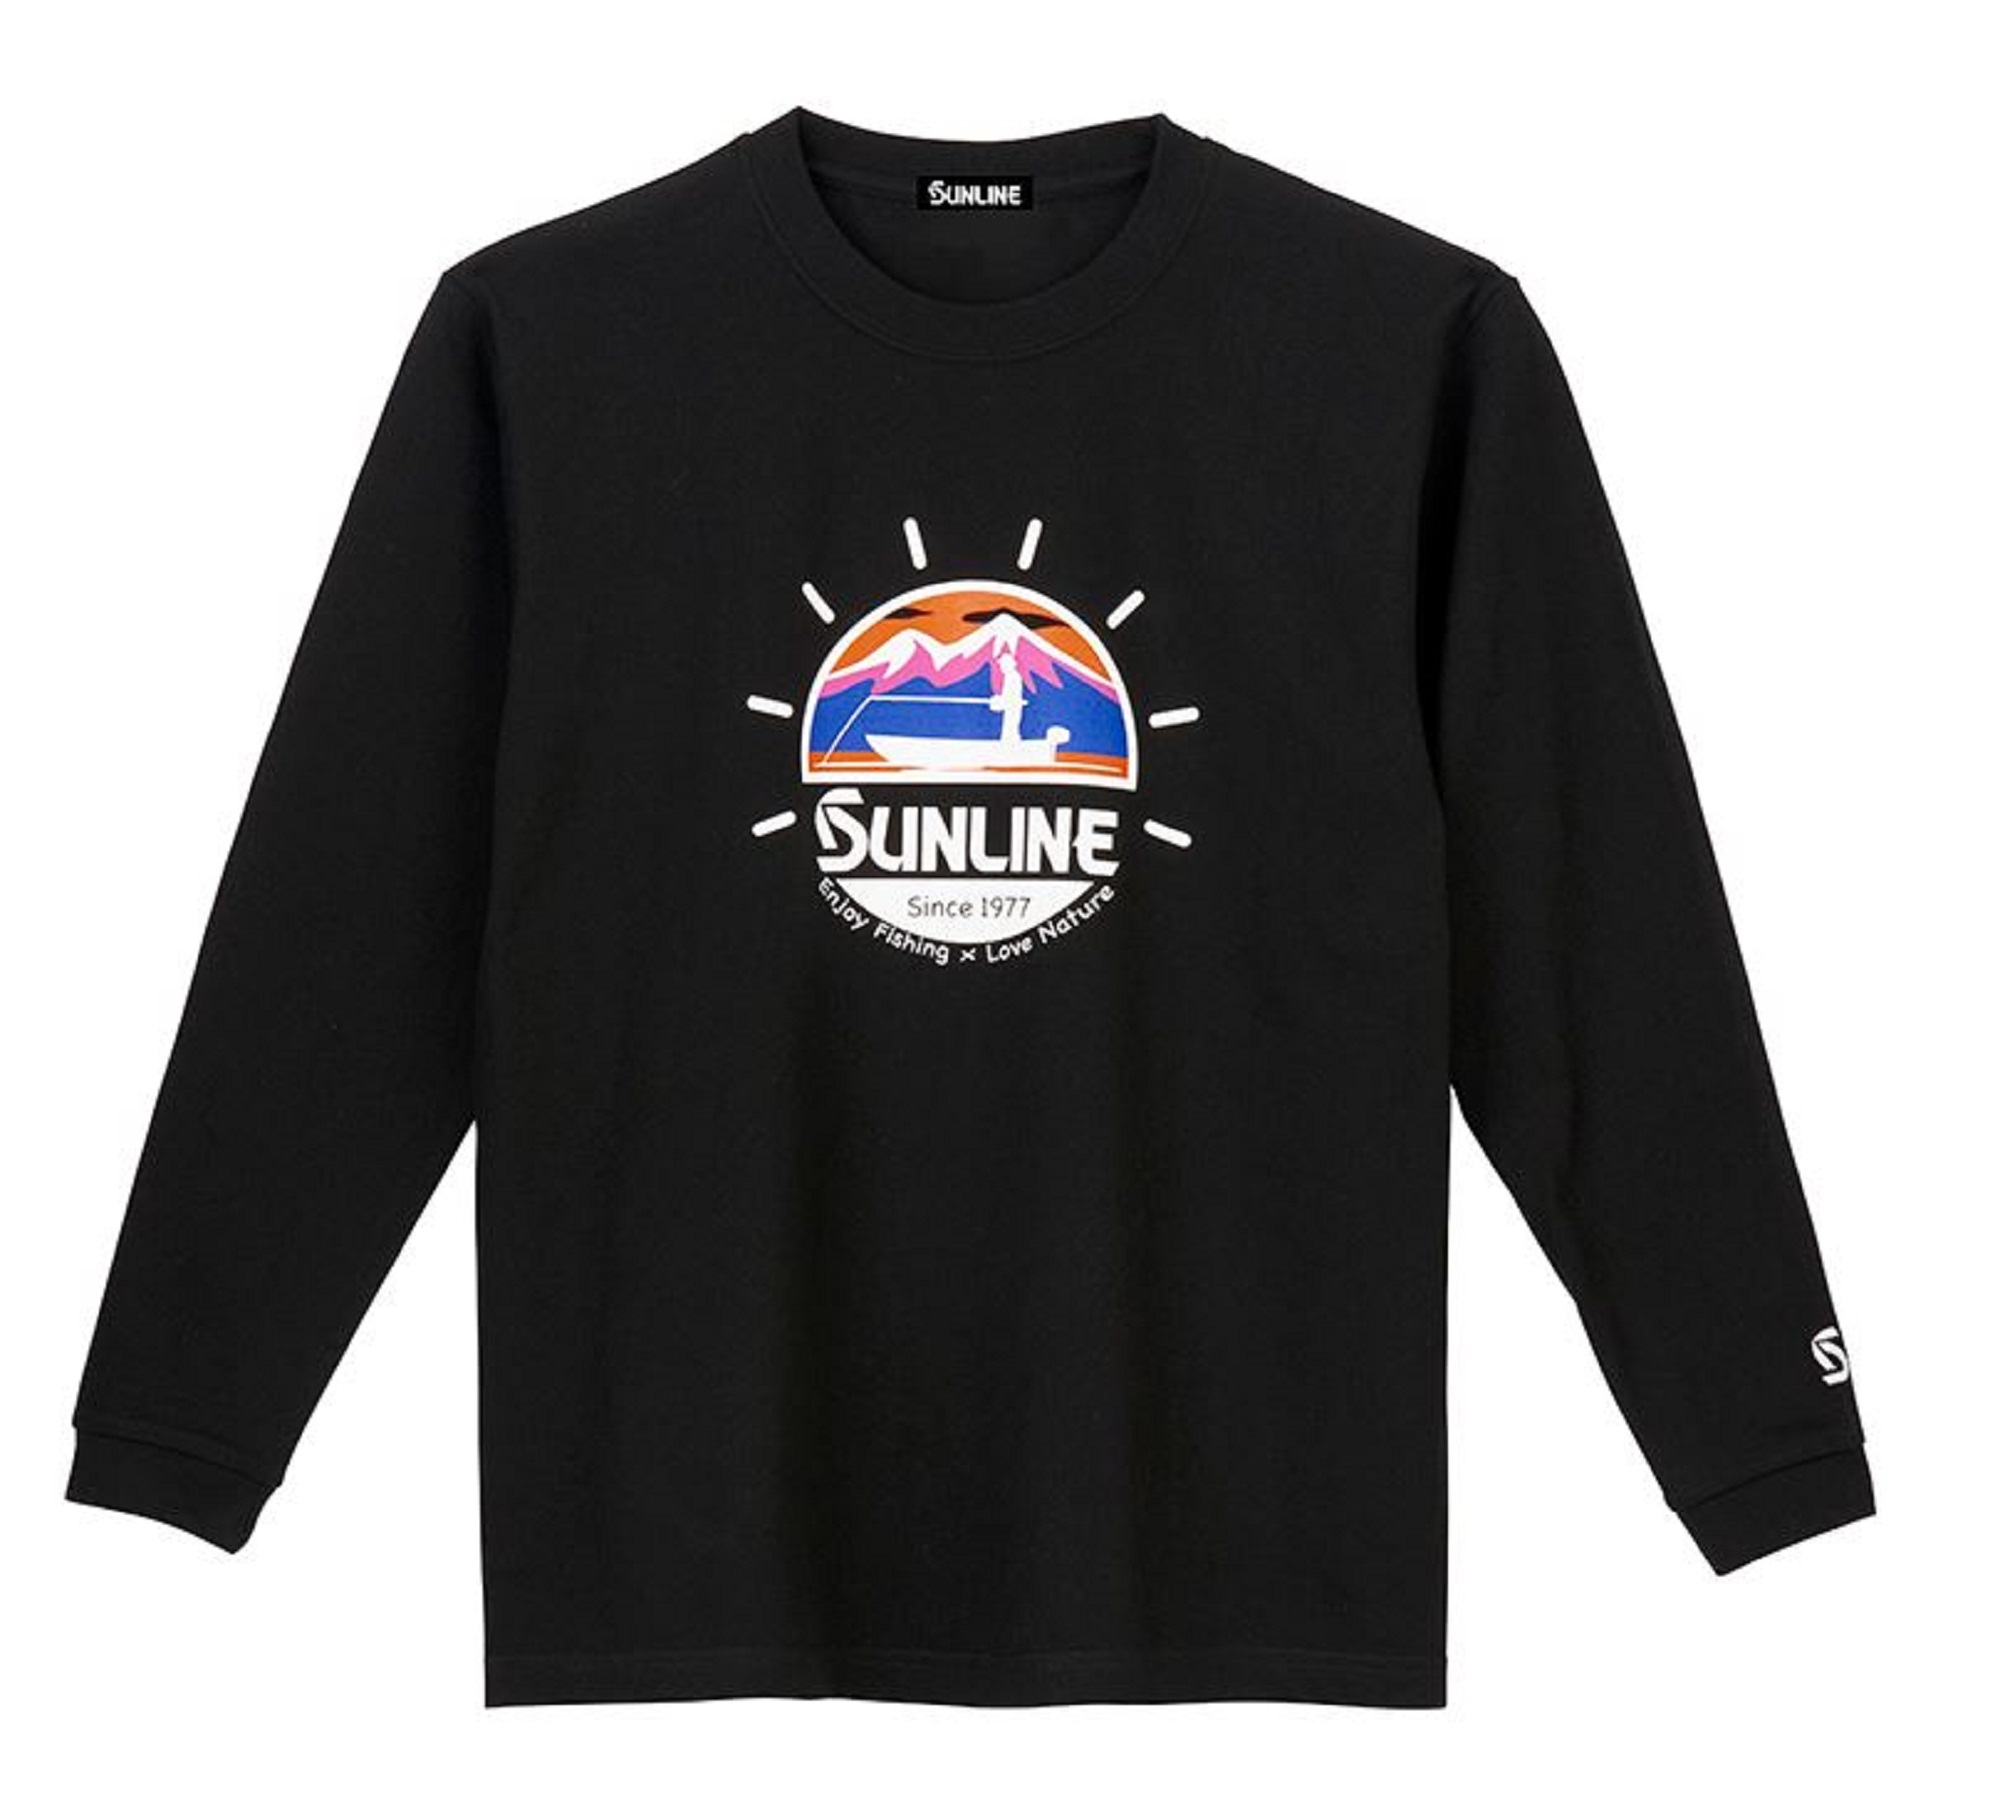 Sunline SUW-15026LT T-Shirt Cotton Long Sleeve Black Size L (4047)